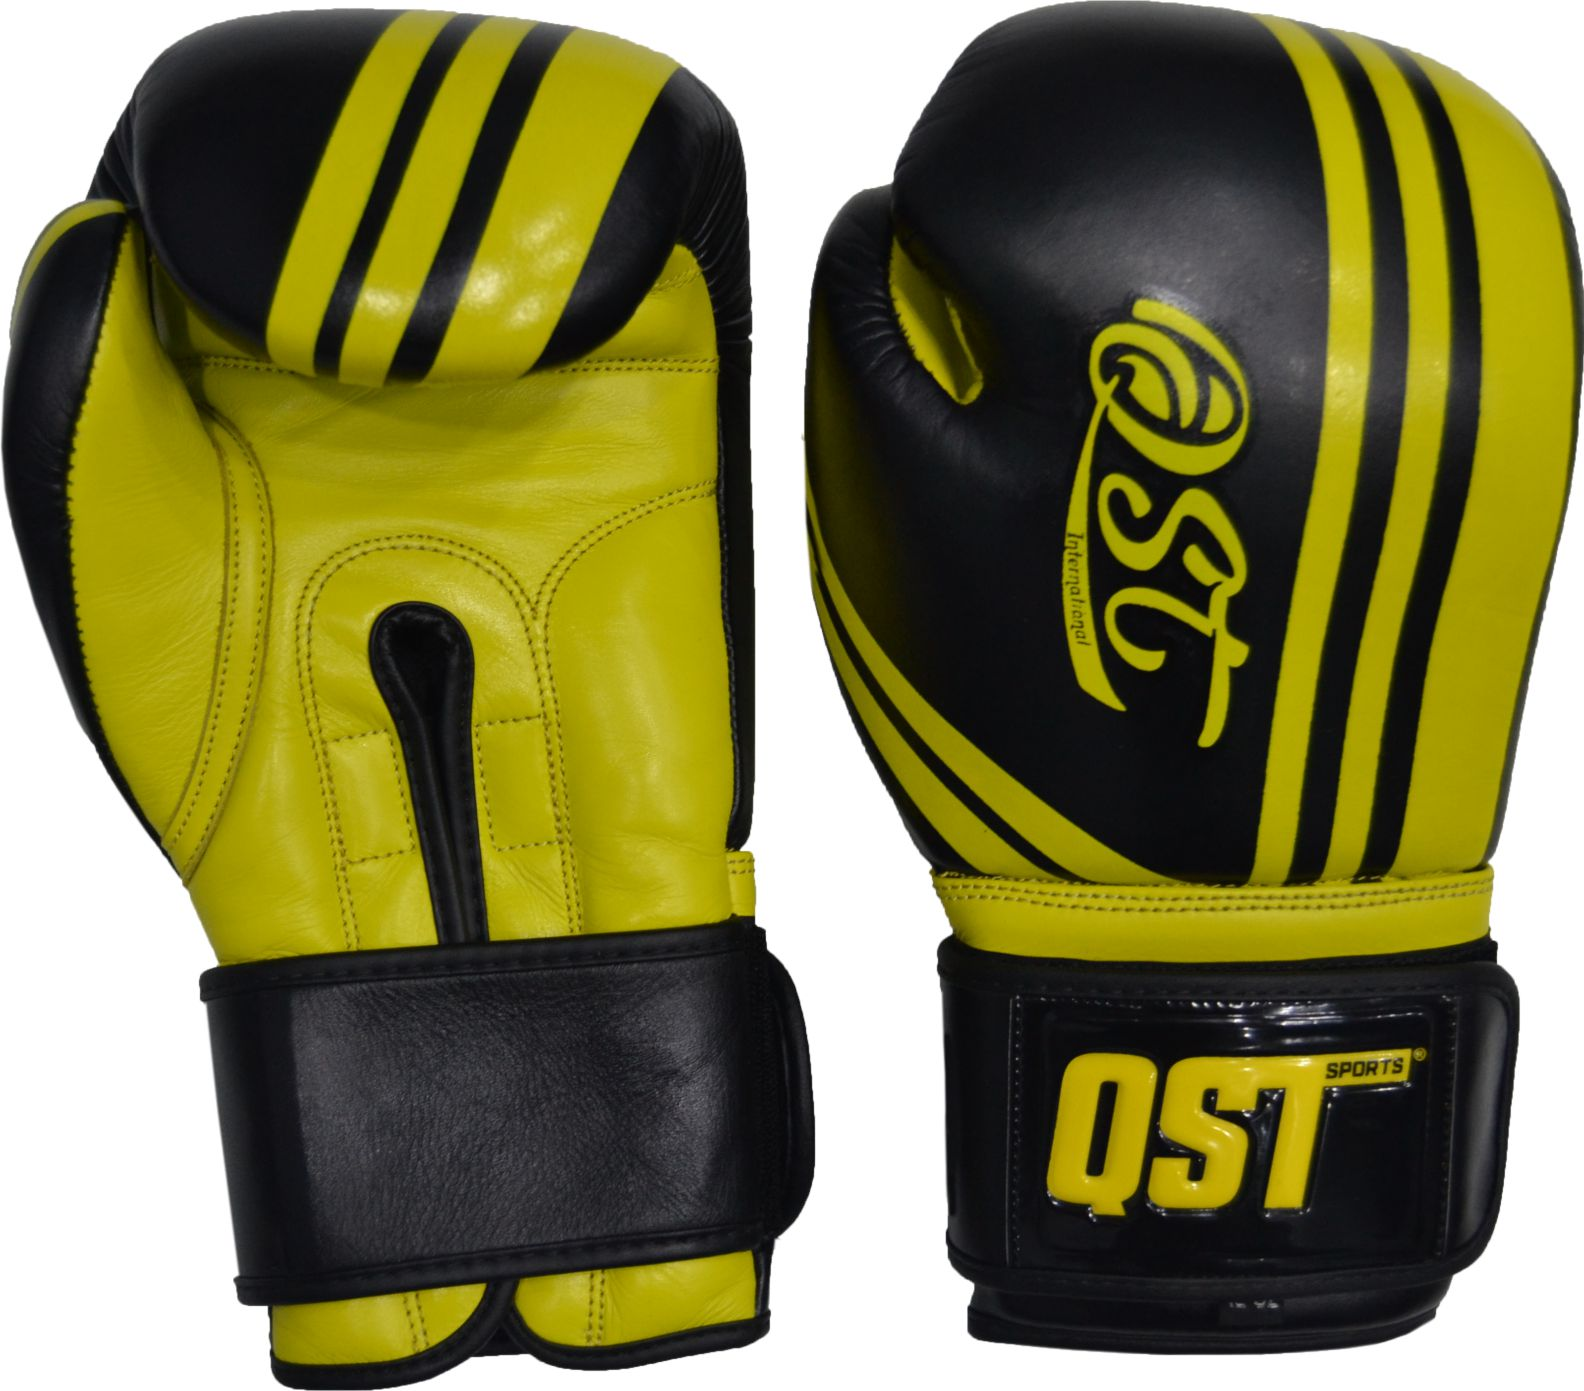 Training Boxing Gloves - PRG-2026